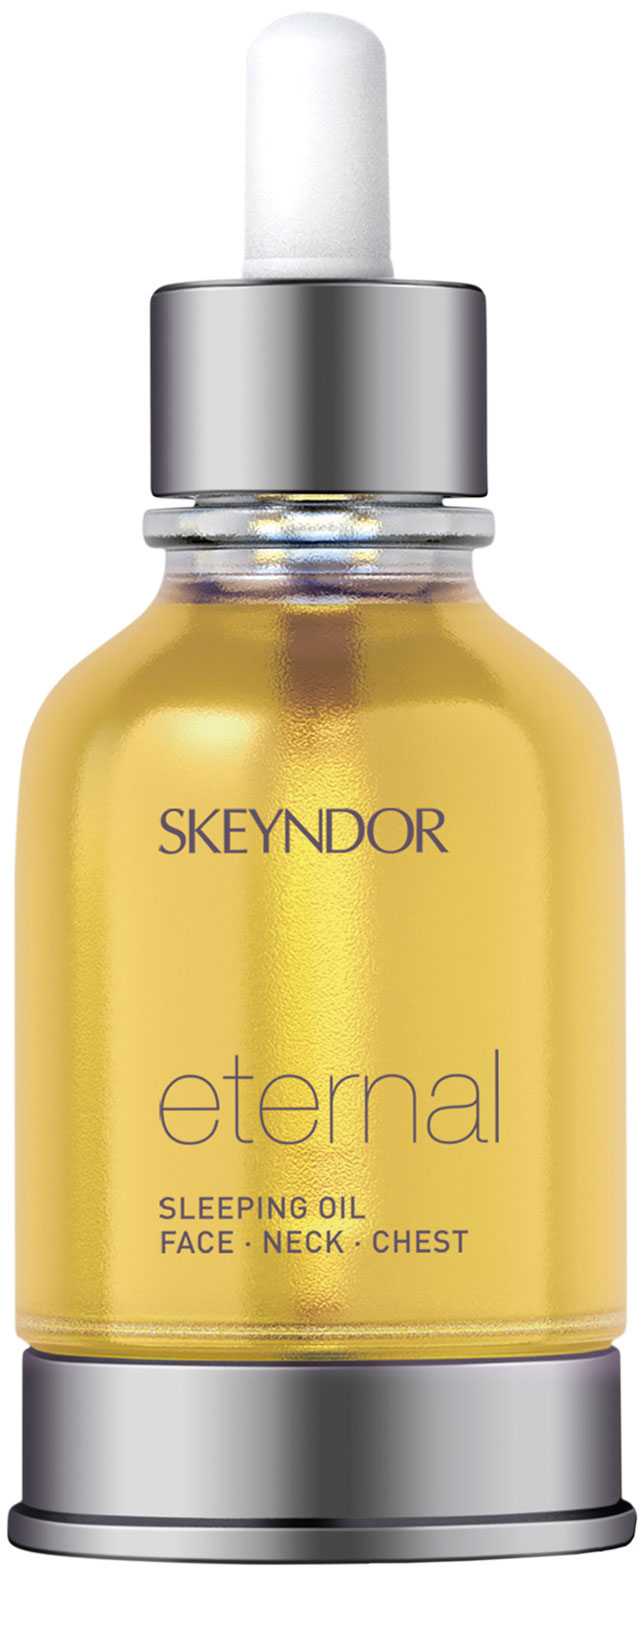 Eternal Sleeping Oil, de Skeyndor